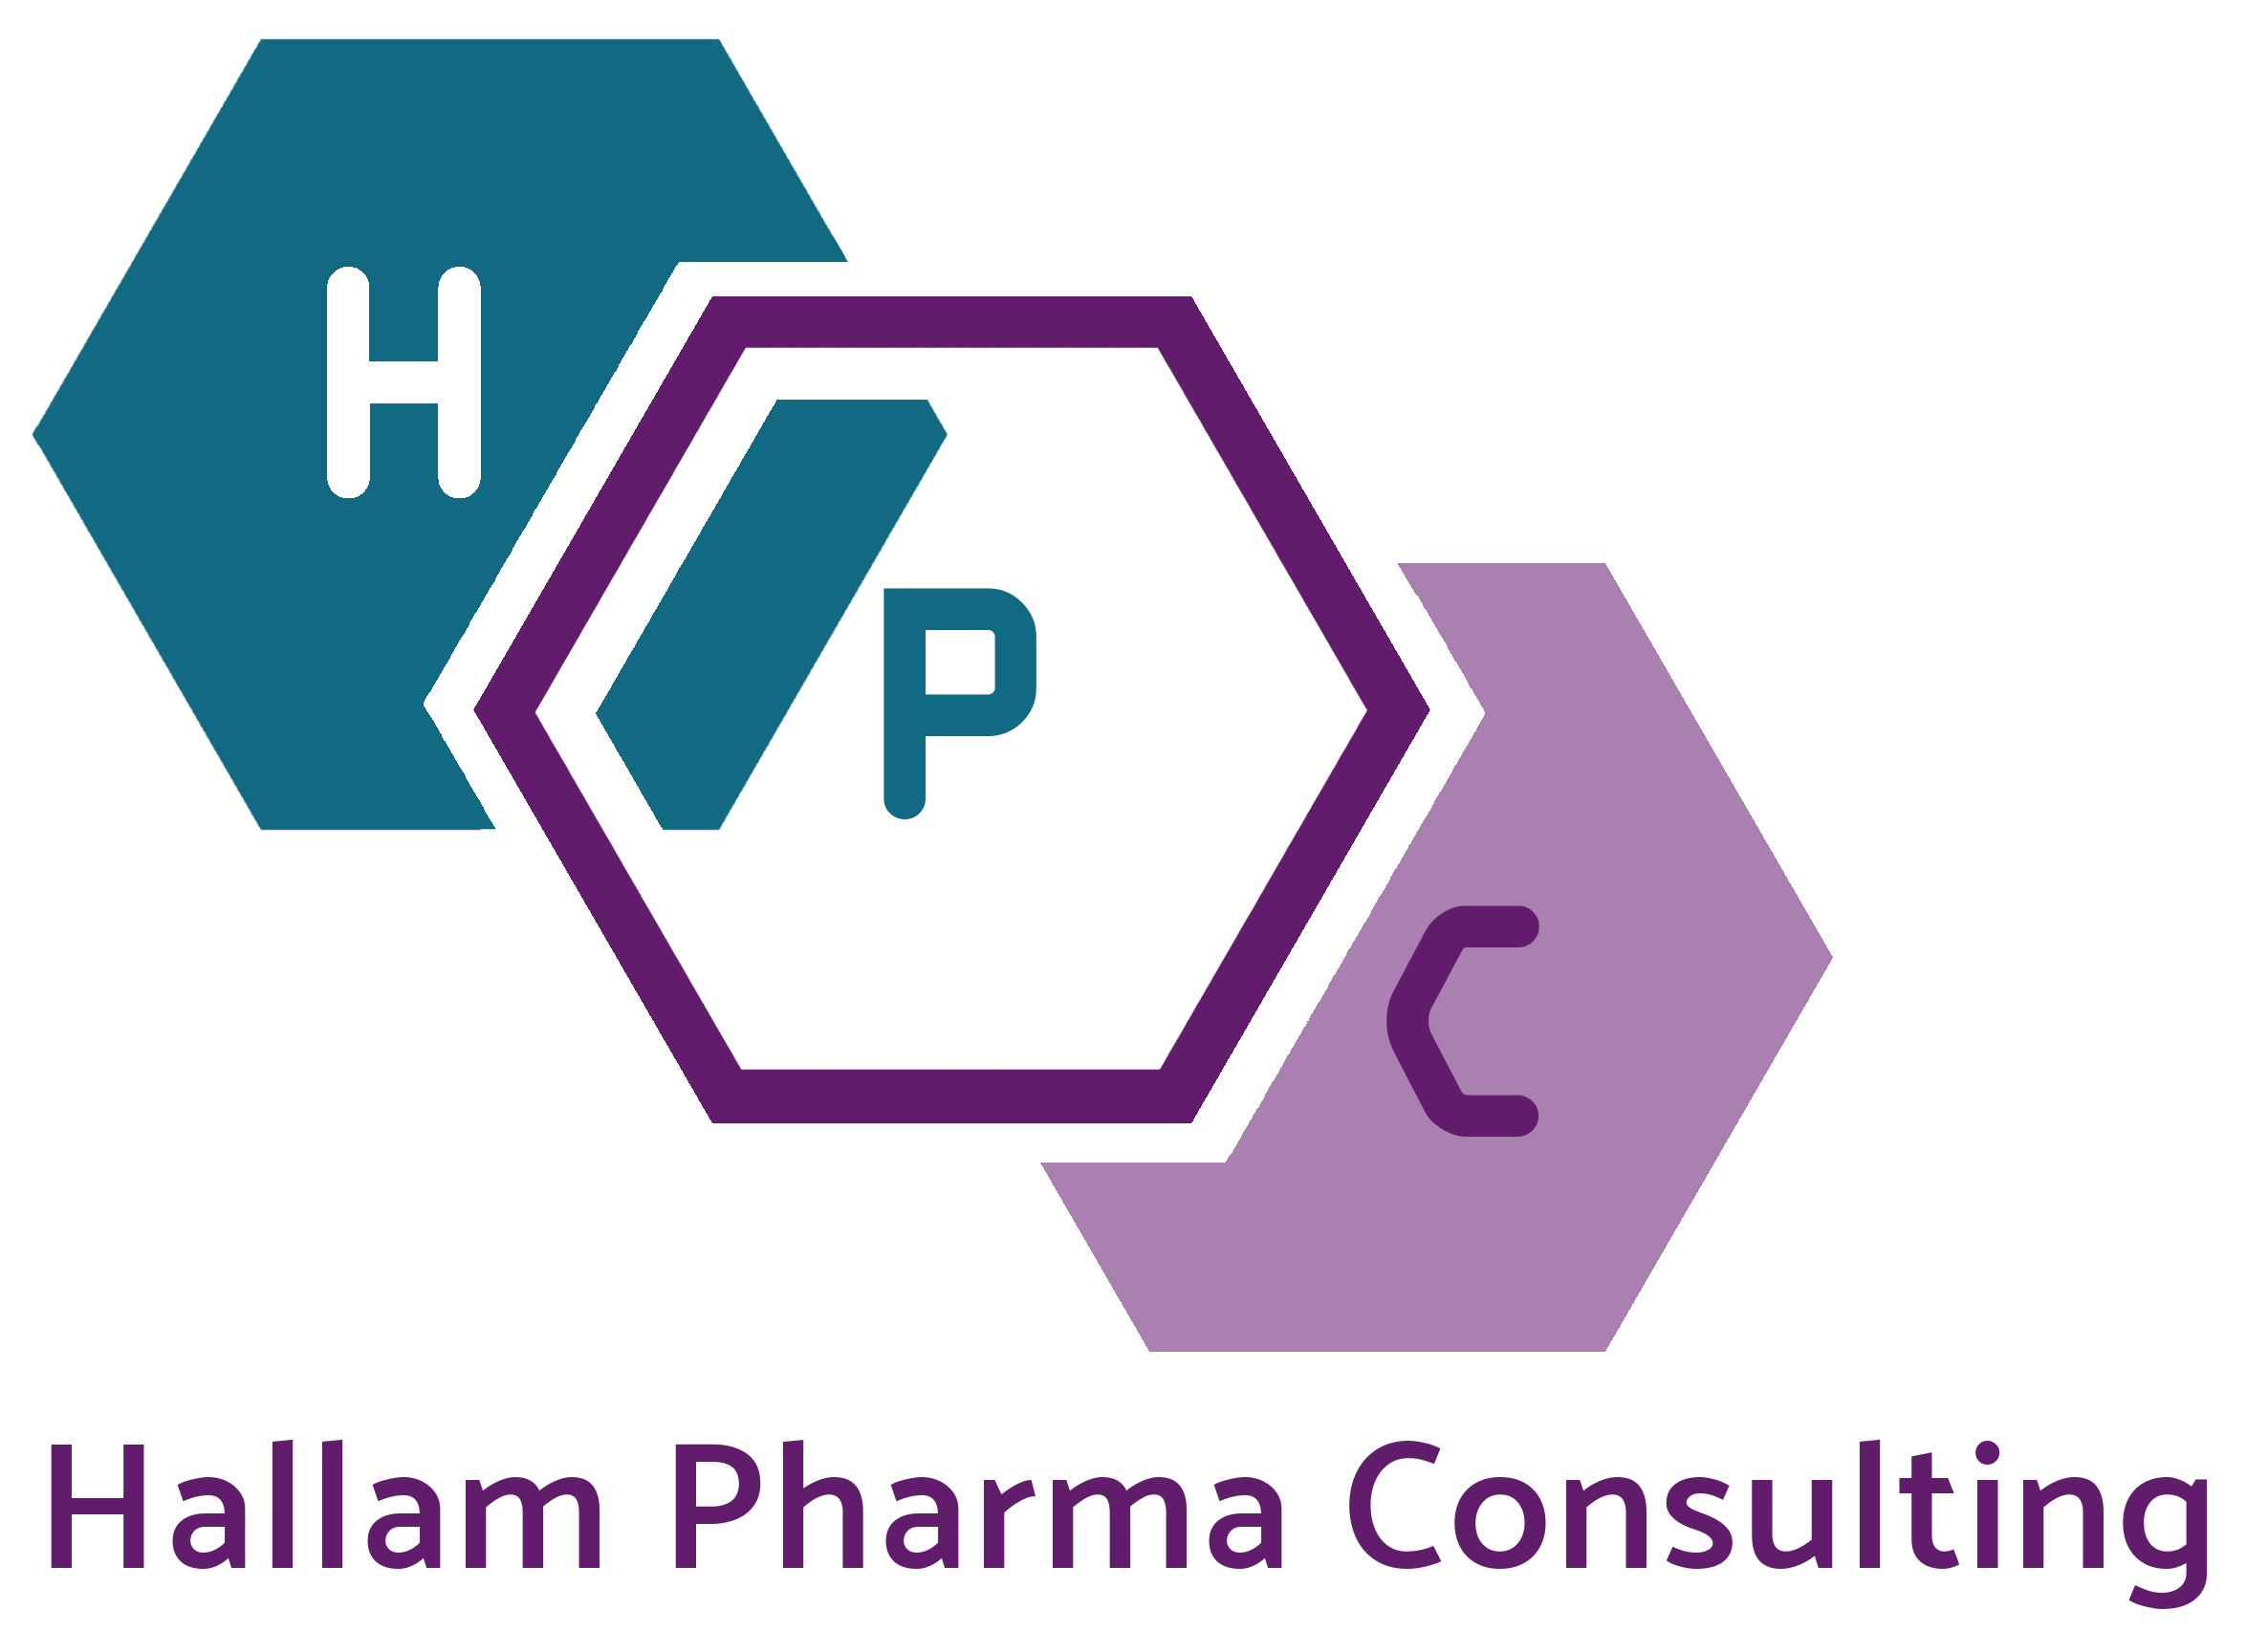 Hallam Pharma Consulting Ltd